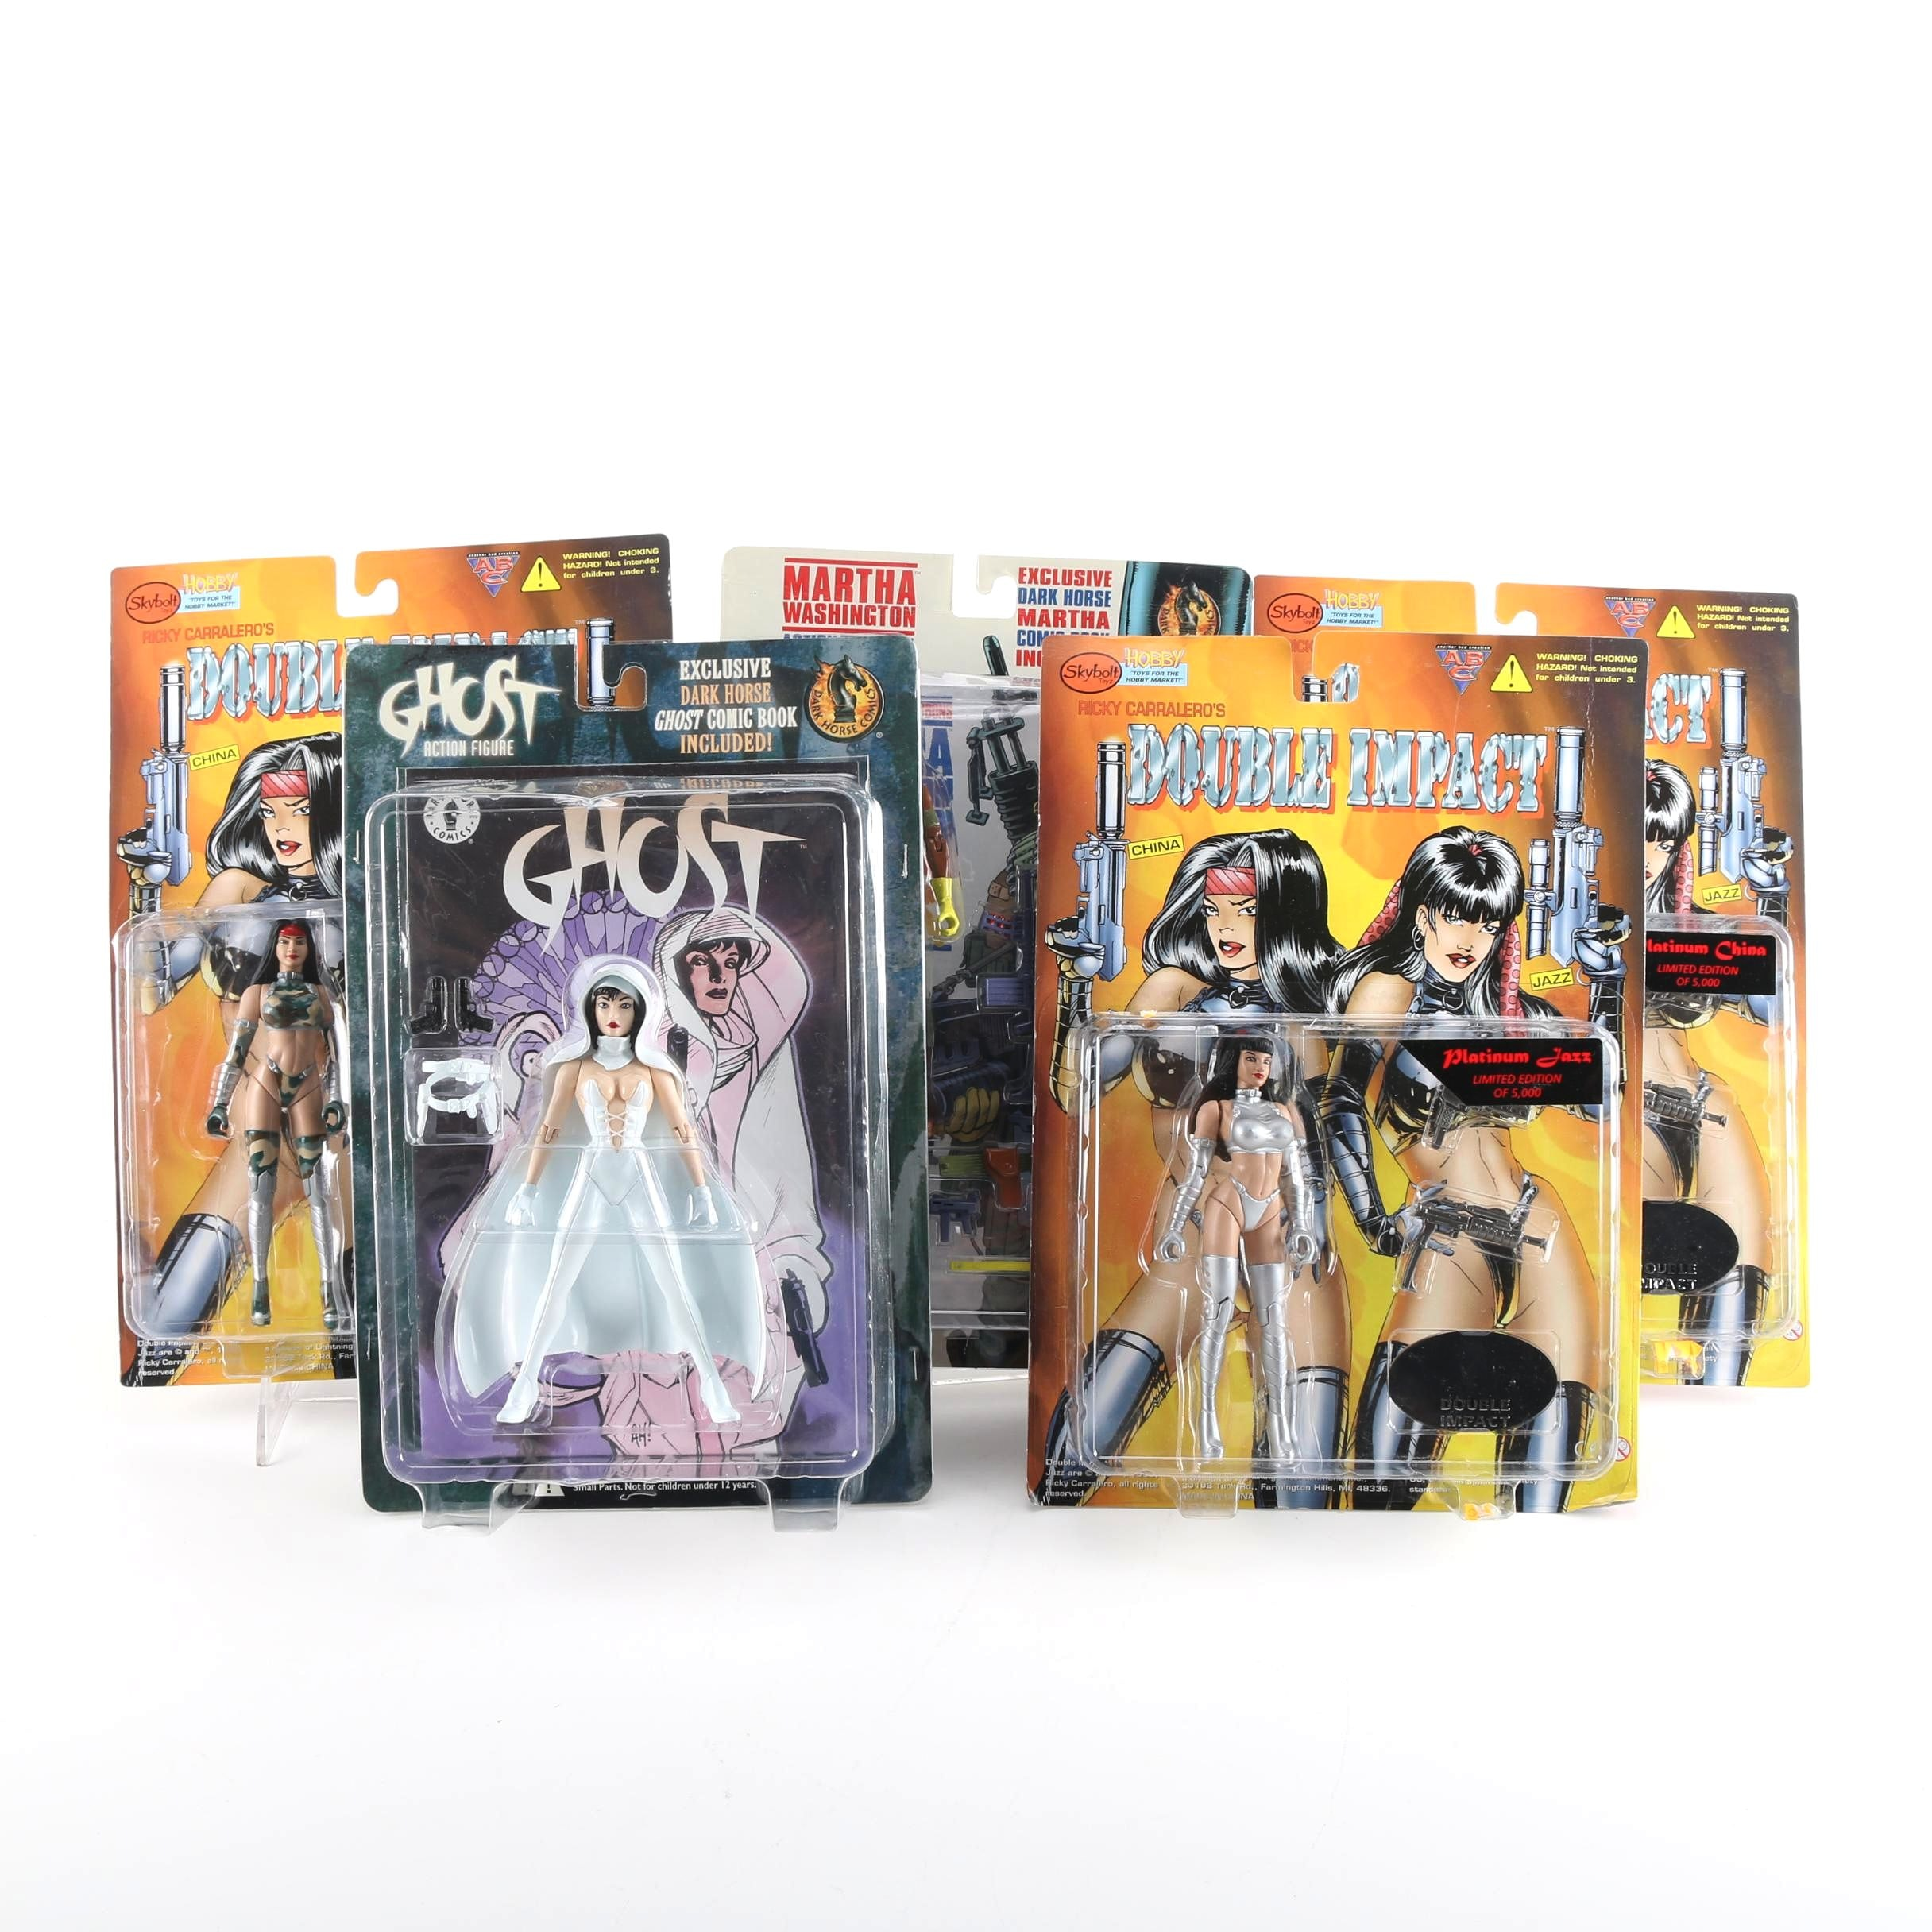 Variety of Female Action Figures Including Ghost, Martha Washington